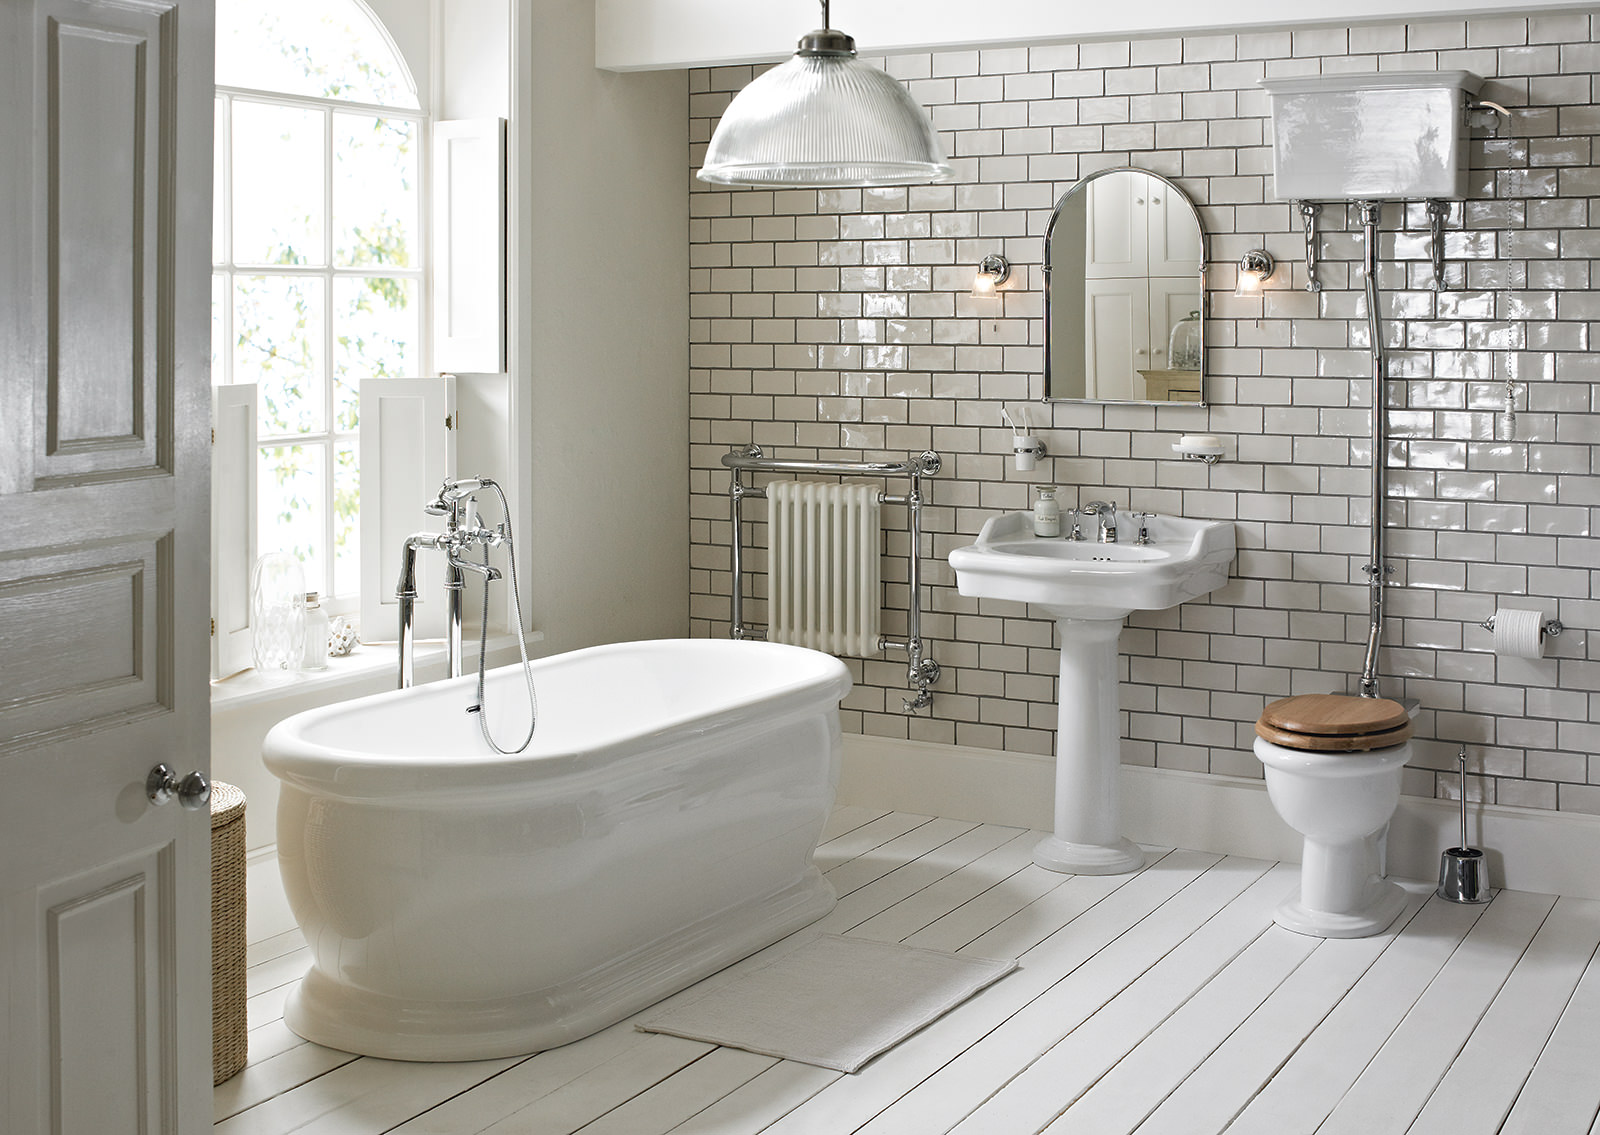 Heritage victoria high level wc and cistern with flush pack Tile bathroom